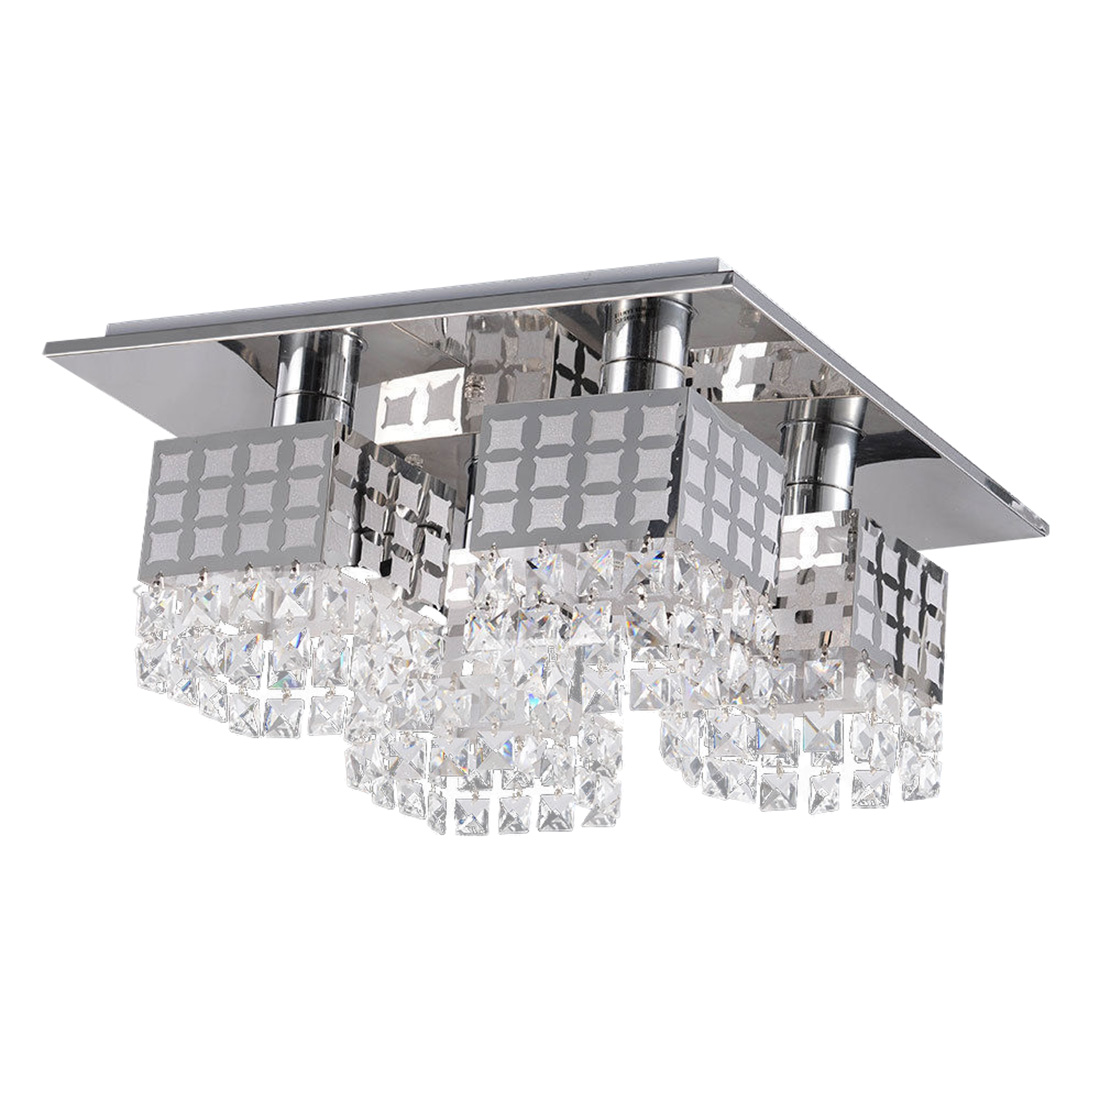 Modern Crystal Chandelier Ceiling Lamp Pendant Modern Contemporary with 4 LightsModern Crystal Chandelier Ceiling Lamp Pendant Modern Contemporary with 4 Lights